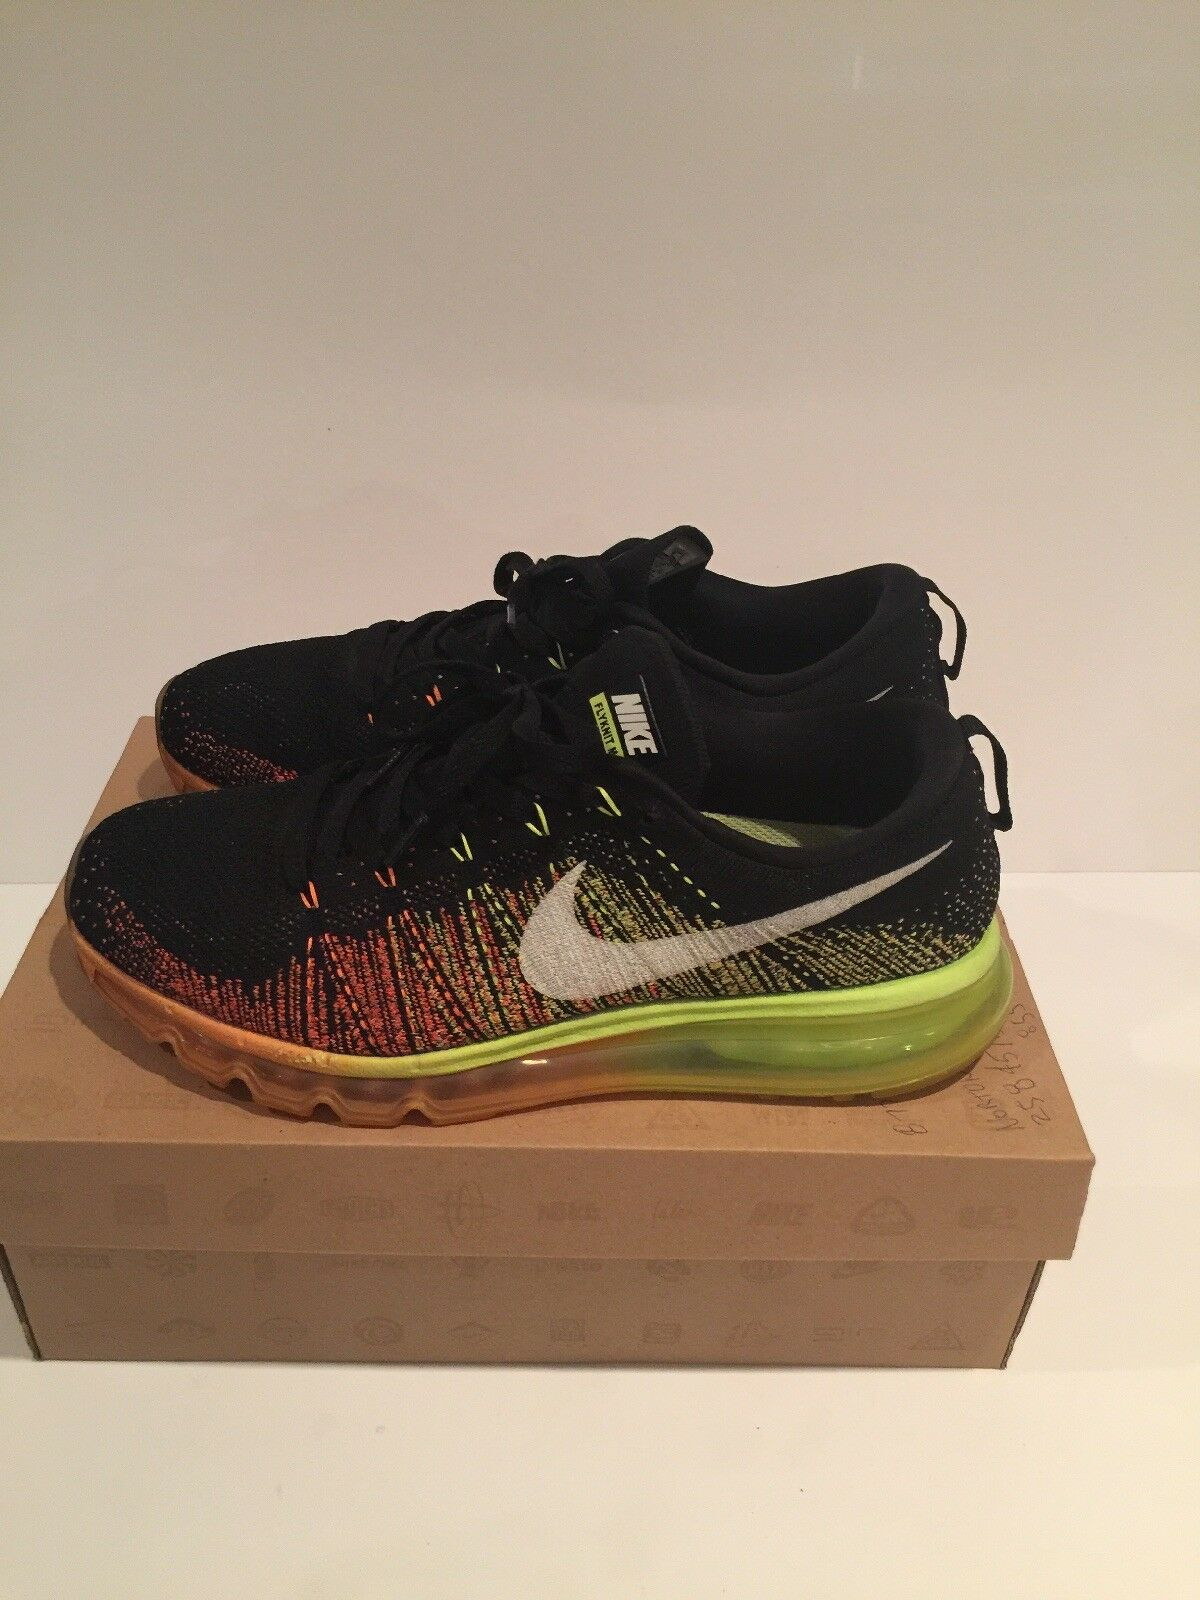 Nike Air Max Flyknit Black Orange Yellow Men's Size 10 Pre Owned